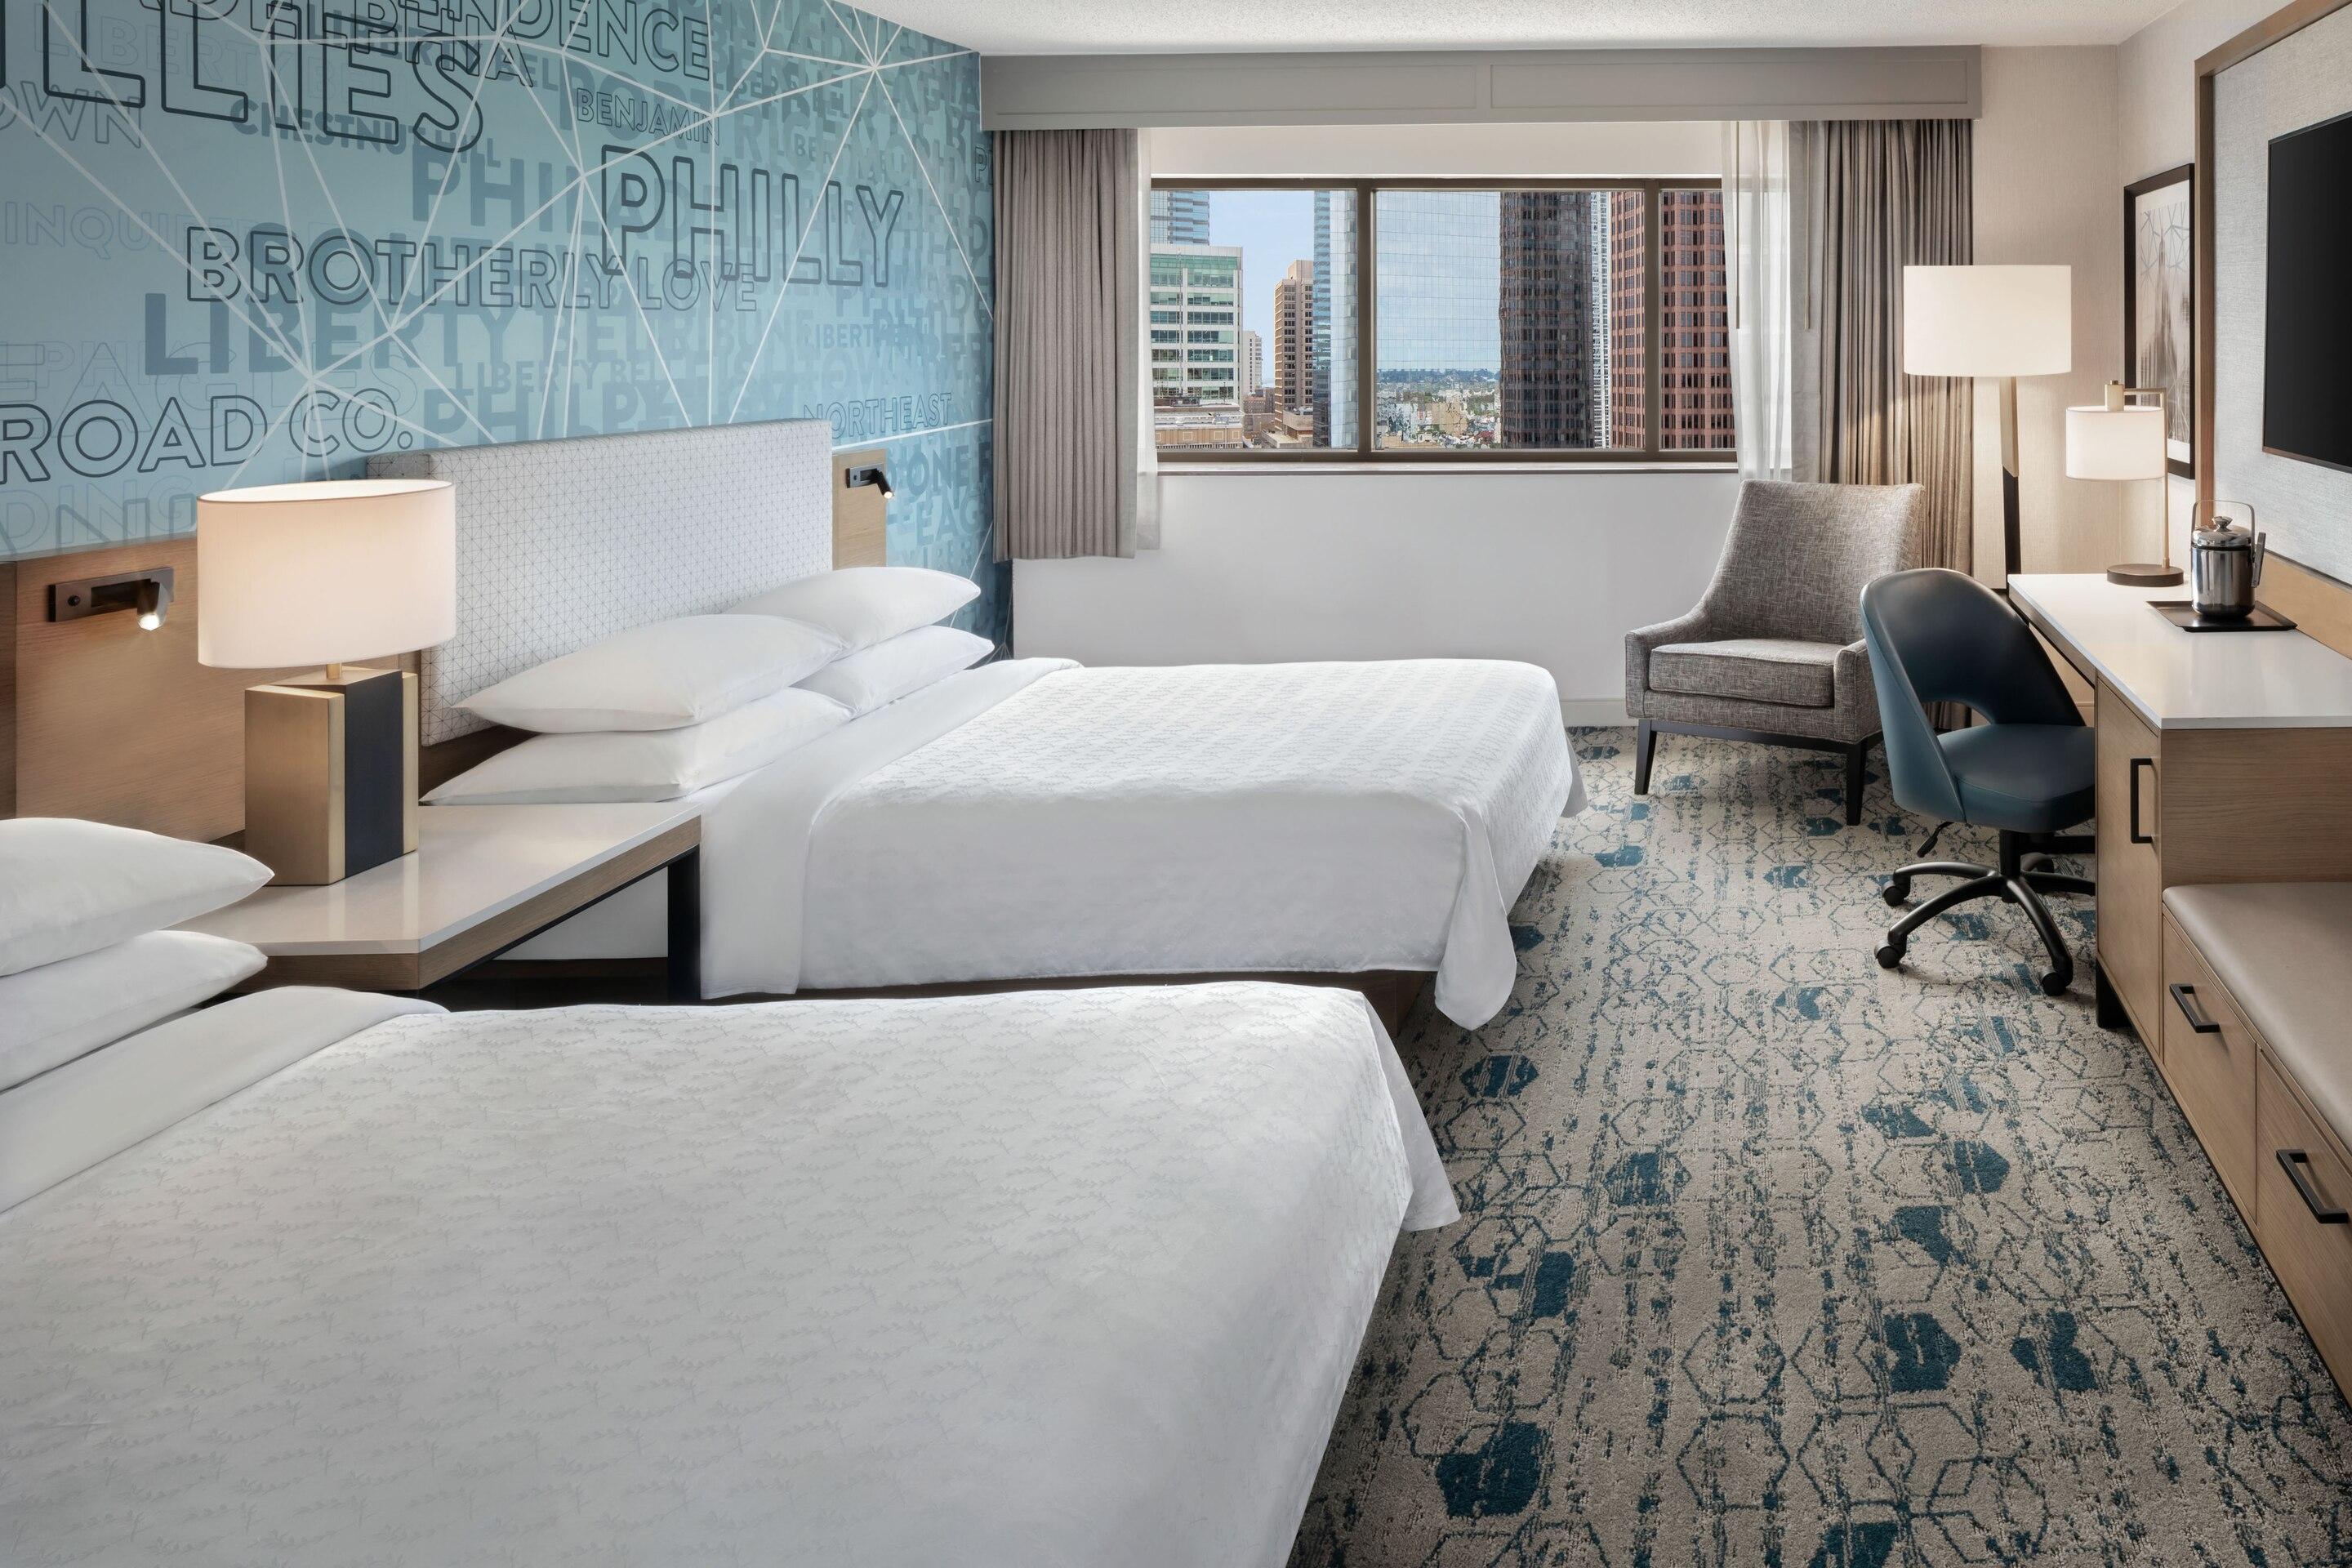 https://www.hotelsbyday.com/_data/default-hotel_image/3/17176/phlws-double-guestroom-3672-hor-clsc.jpg